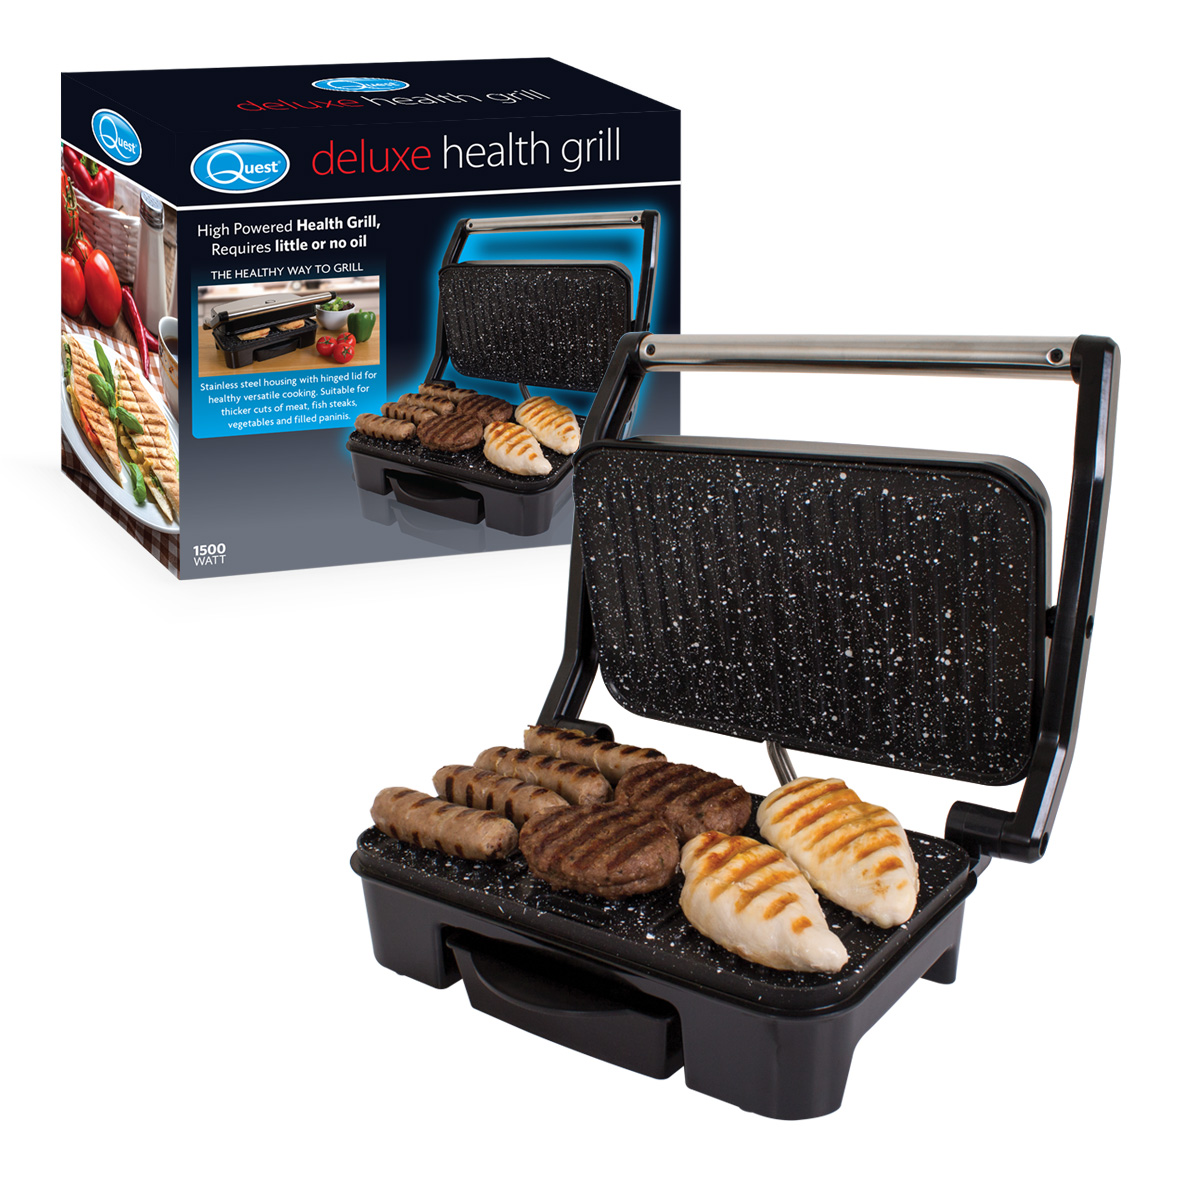 Deluxe Health Grill and box